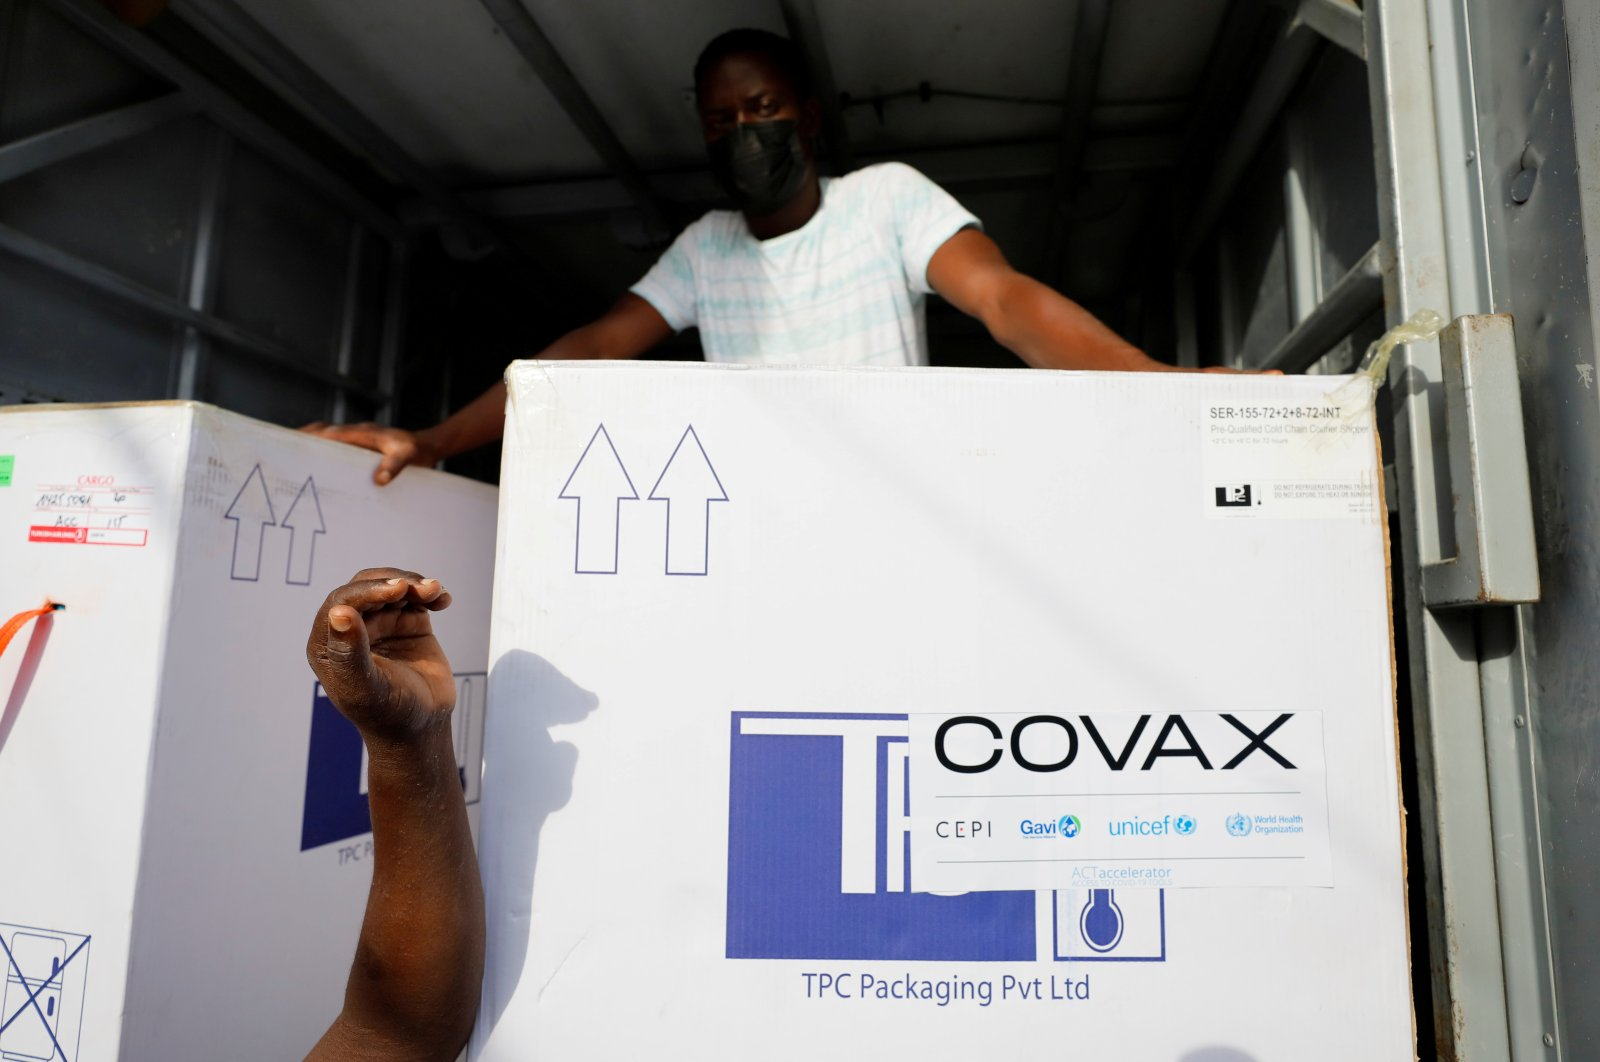 Boxes of AstraZeneca-Oxford coronavirus vaccines, redeployed from the Democratic Republic of Congo, arrive at a cold storage facility in Accra, Ghana, May 7, 2021. (Reuters Photo)